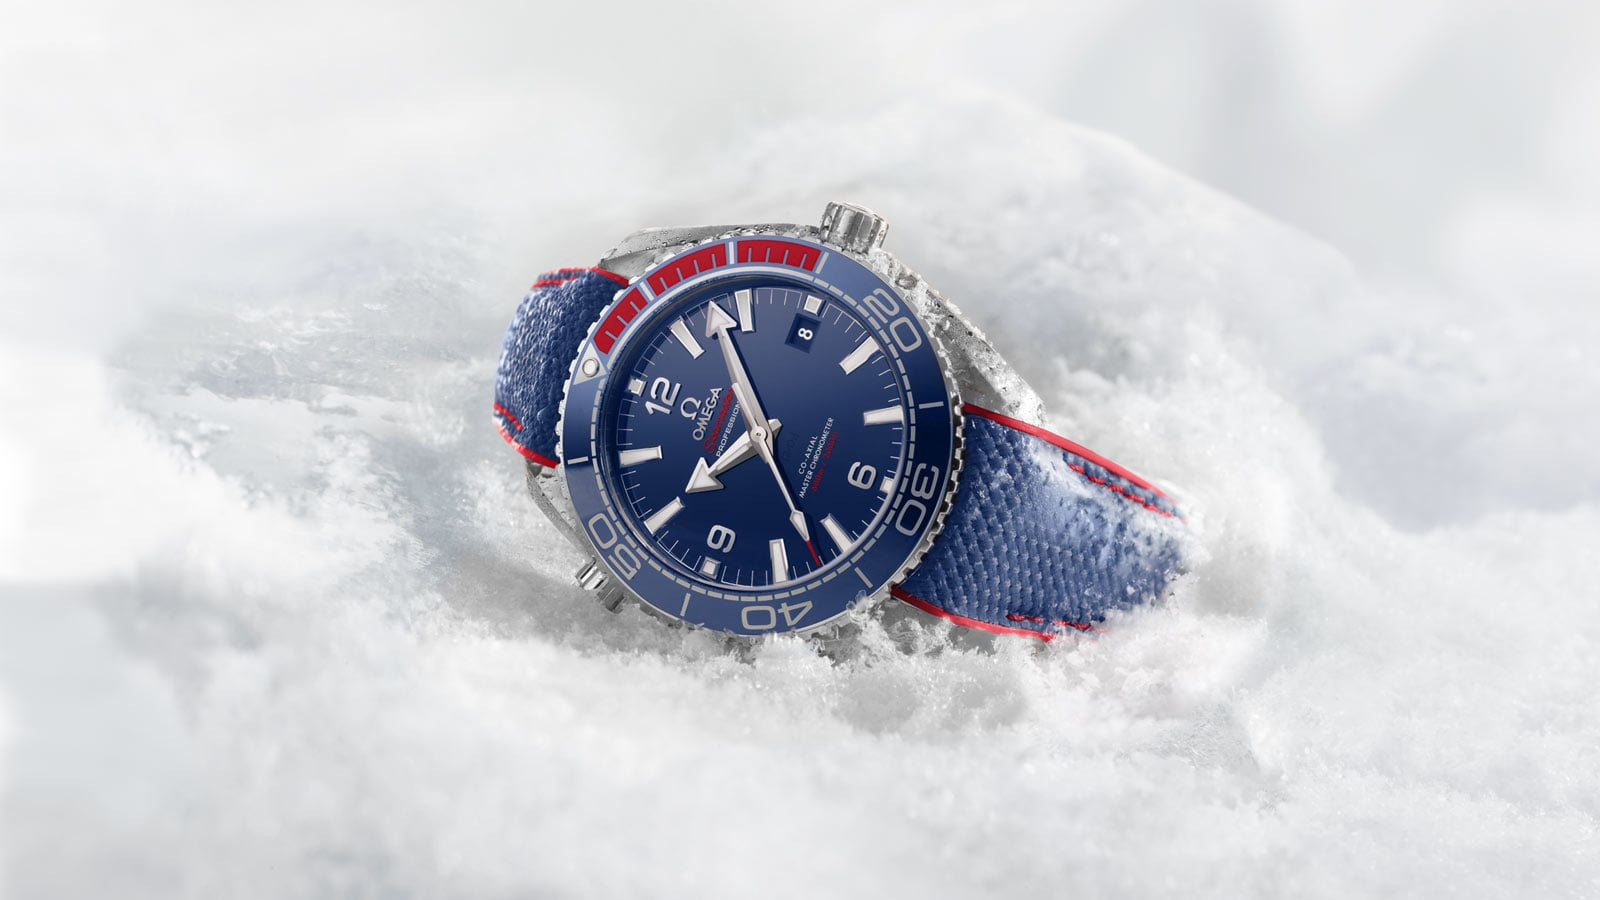 """Pyeongchang 2018"" Limited Edition, Olympic Games Watch Collection"